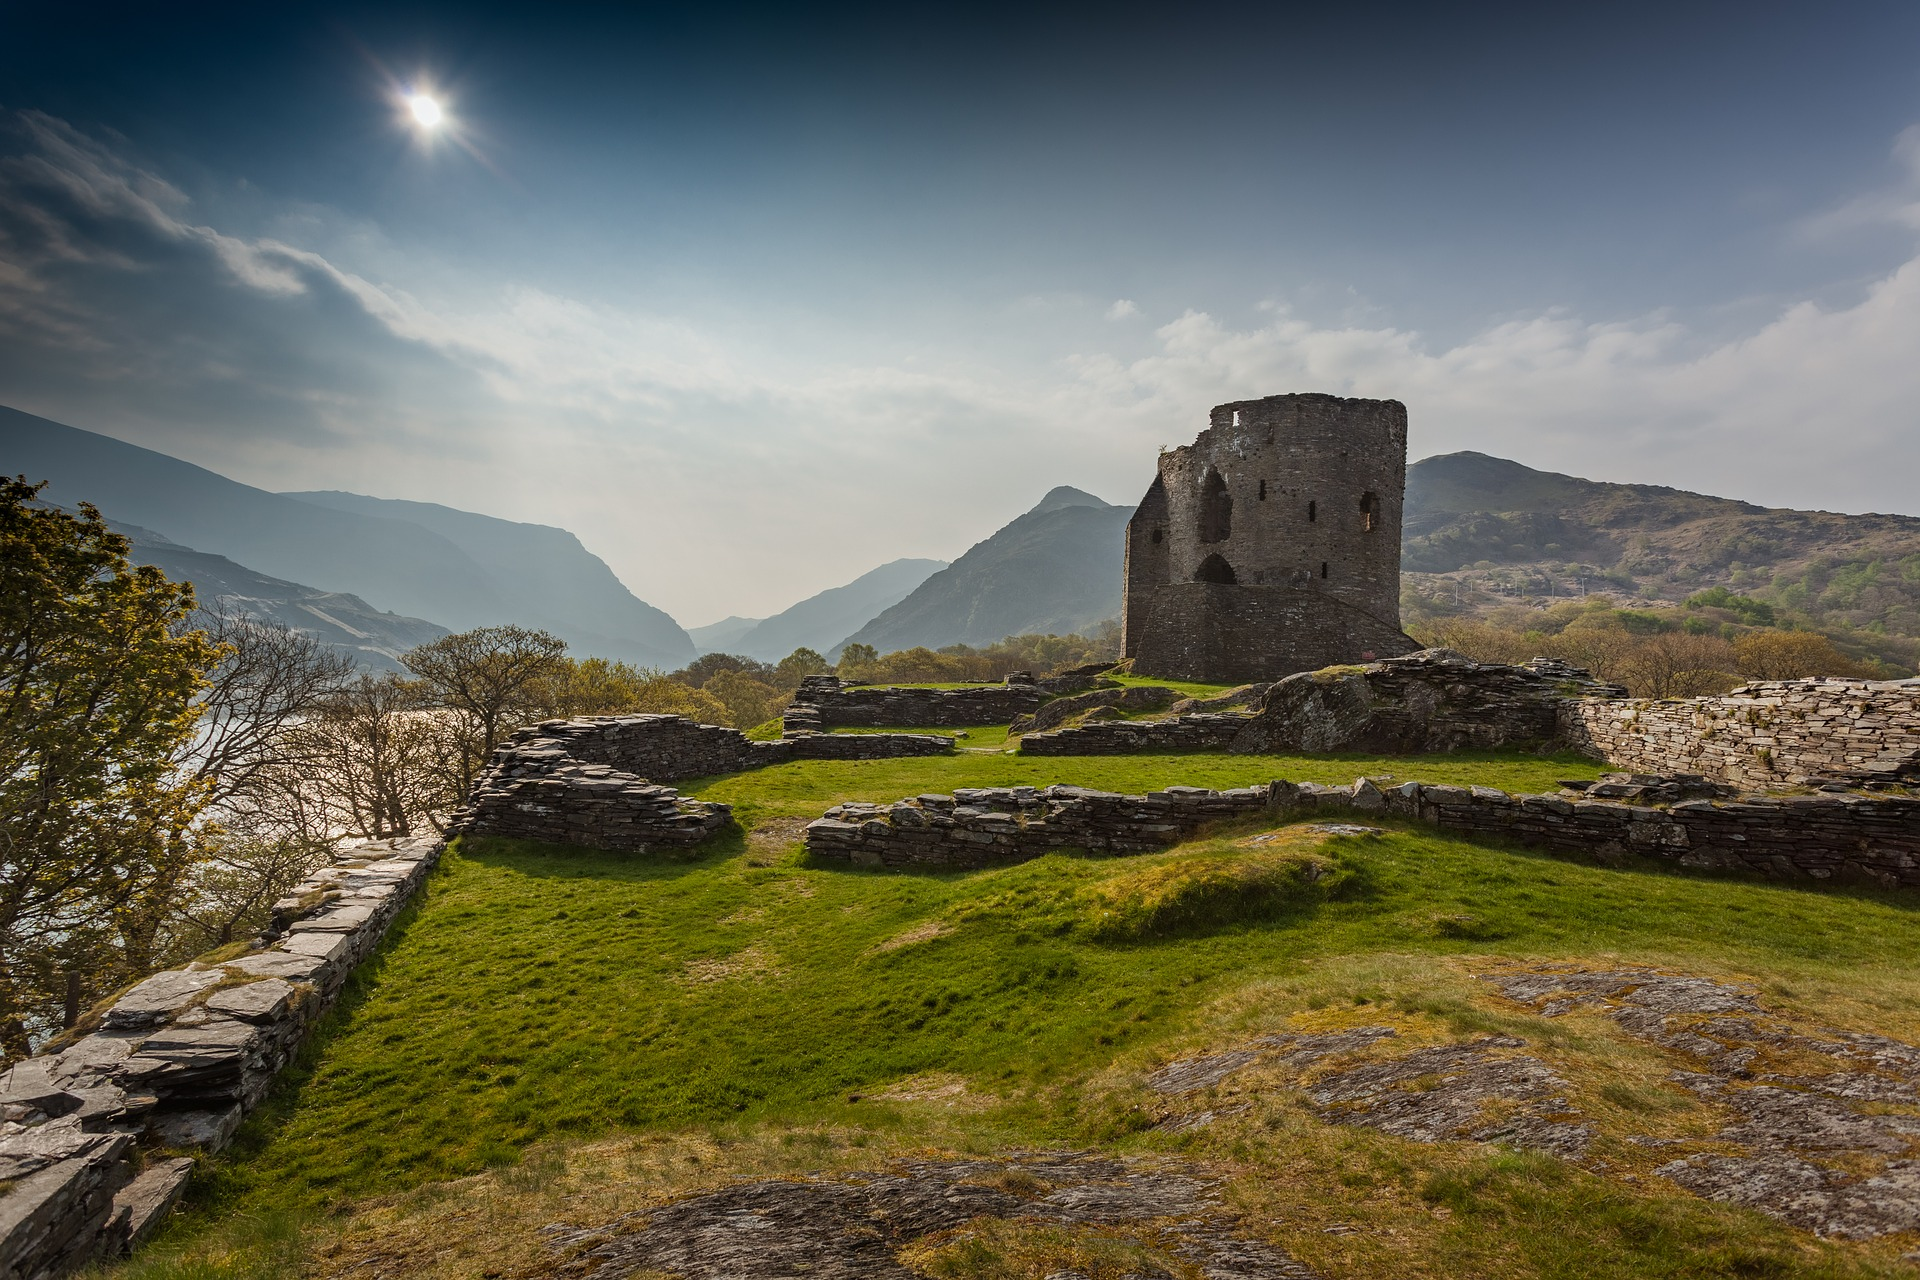 Image of Snowdonia with a tower in the foreground